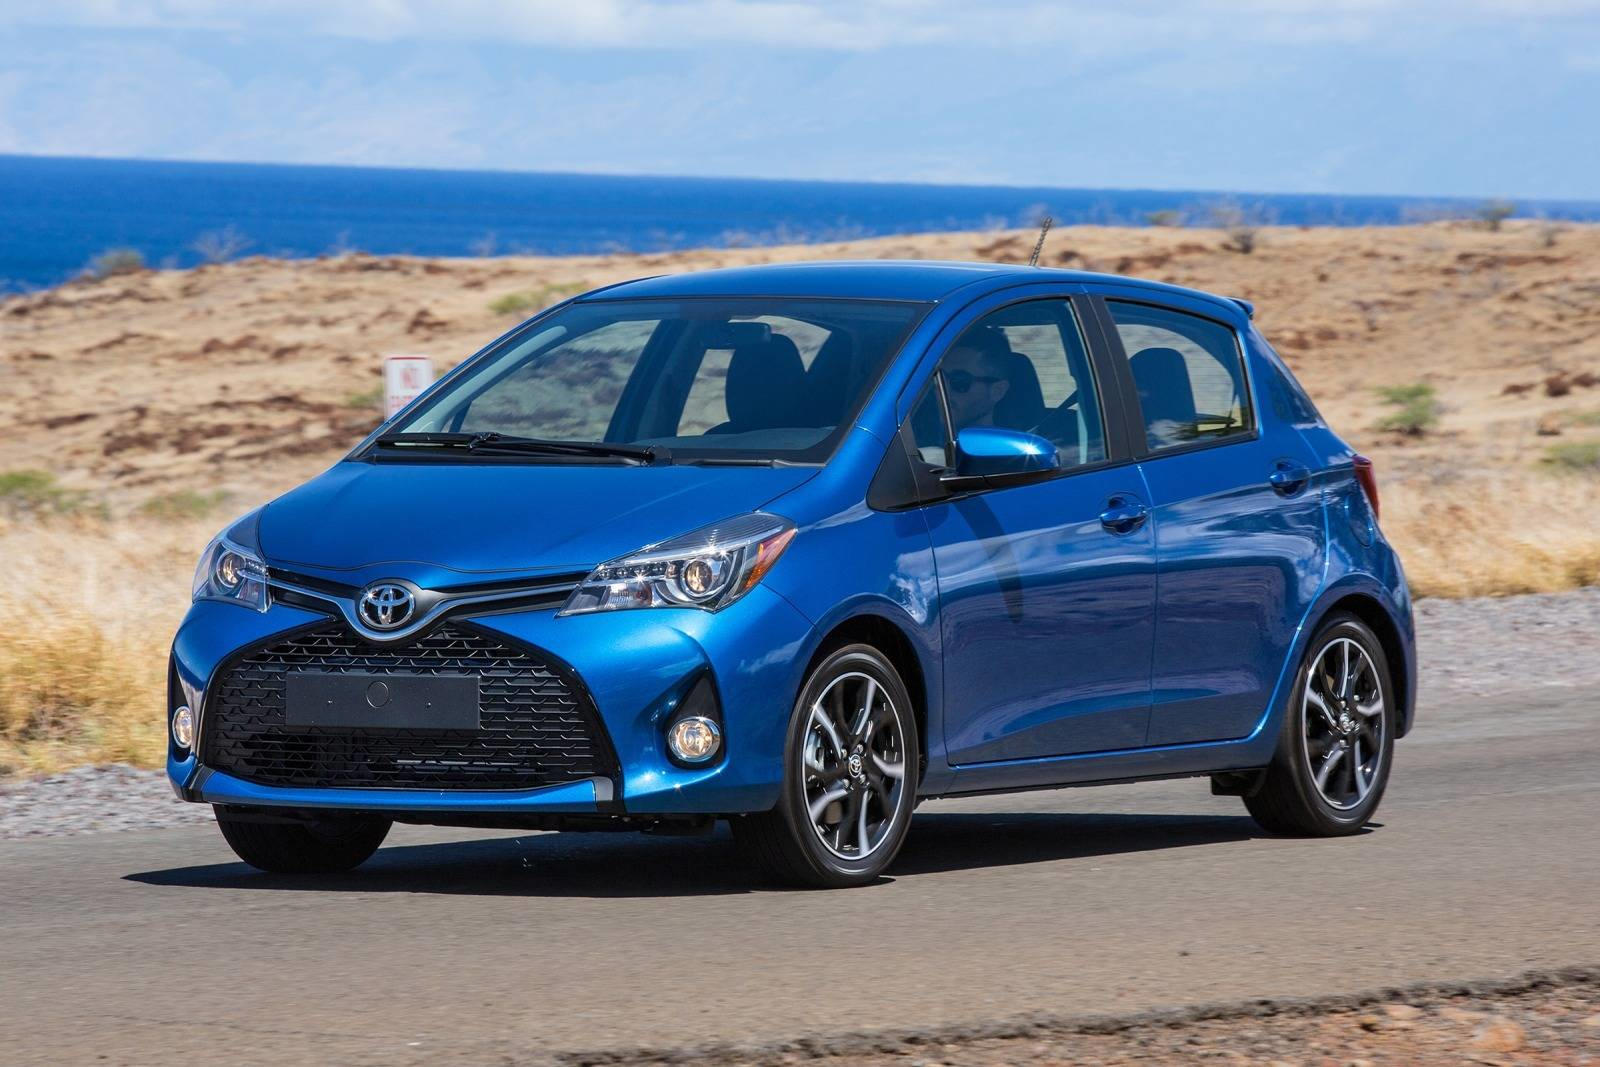 2018 toyota yaris hatchback review trims specs and price. Black Bedroom Furniture Sets. Home Design Ideas